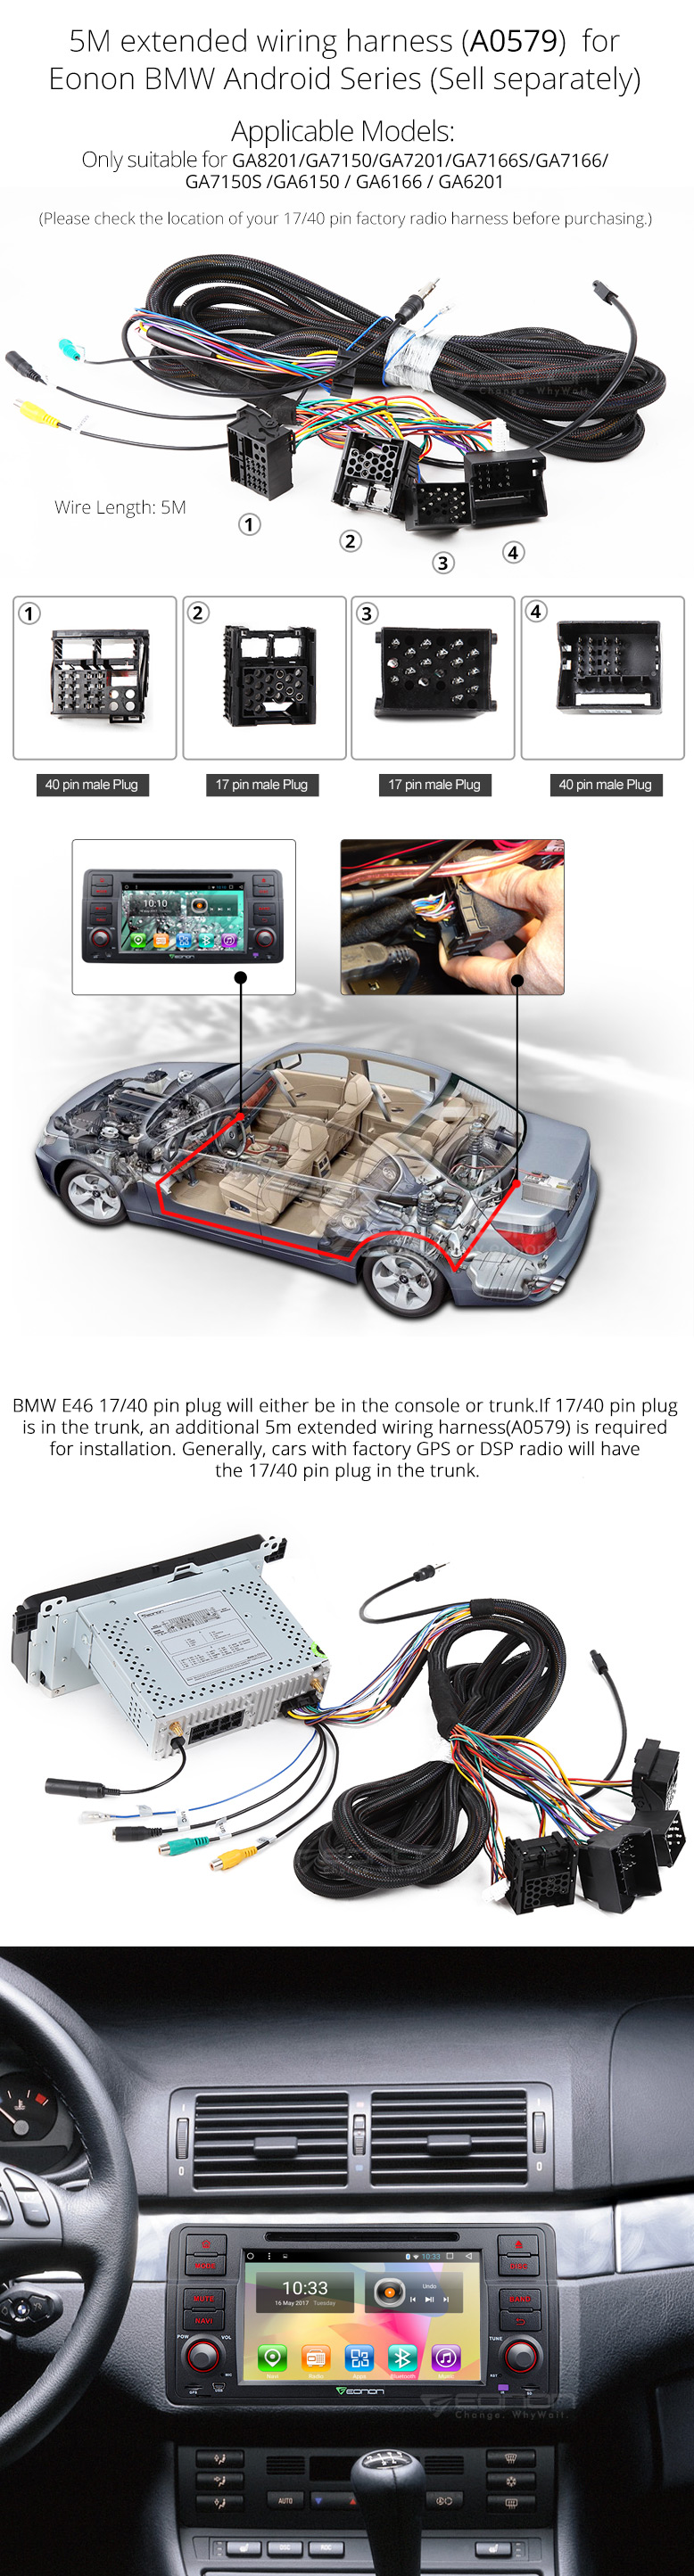 GA7150S 05 eonon ga7150s bmw android 6 0 2gb ram car dvd bmw e46 android eonon wiring harness at n-0.co